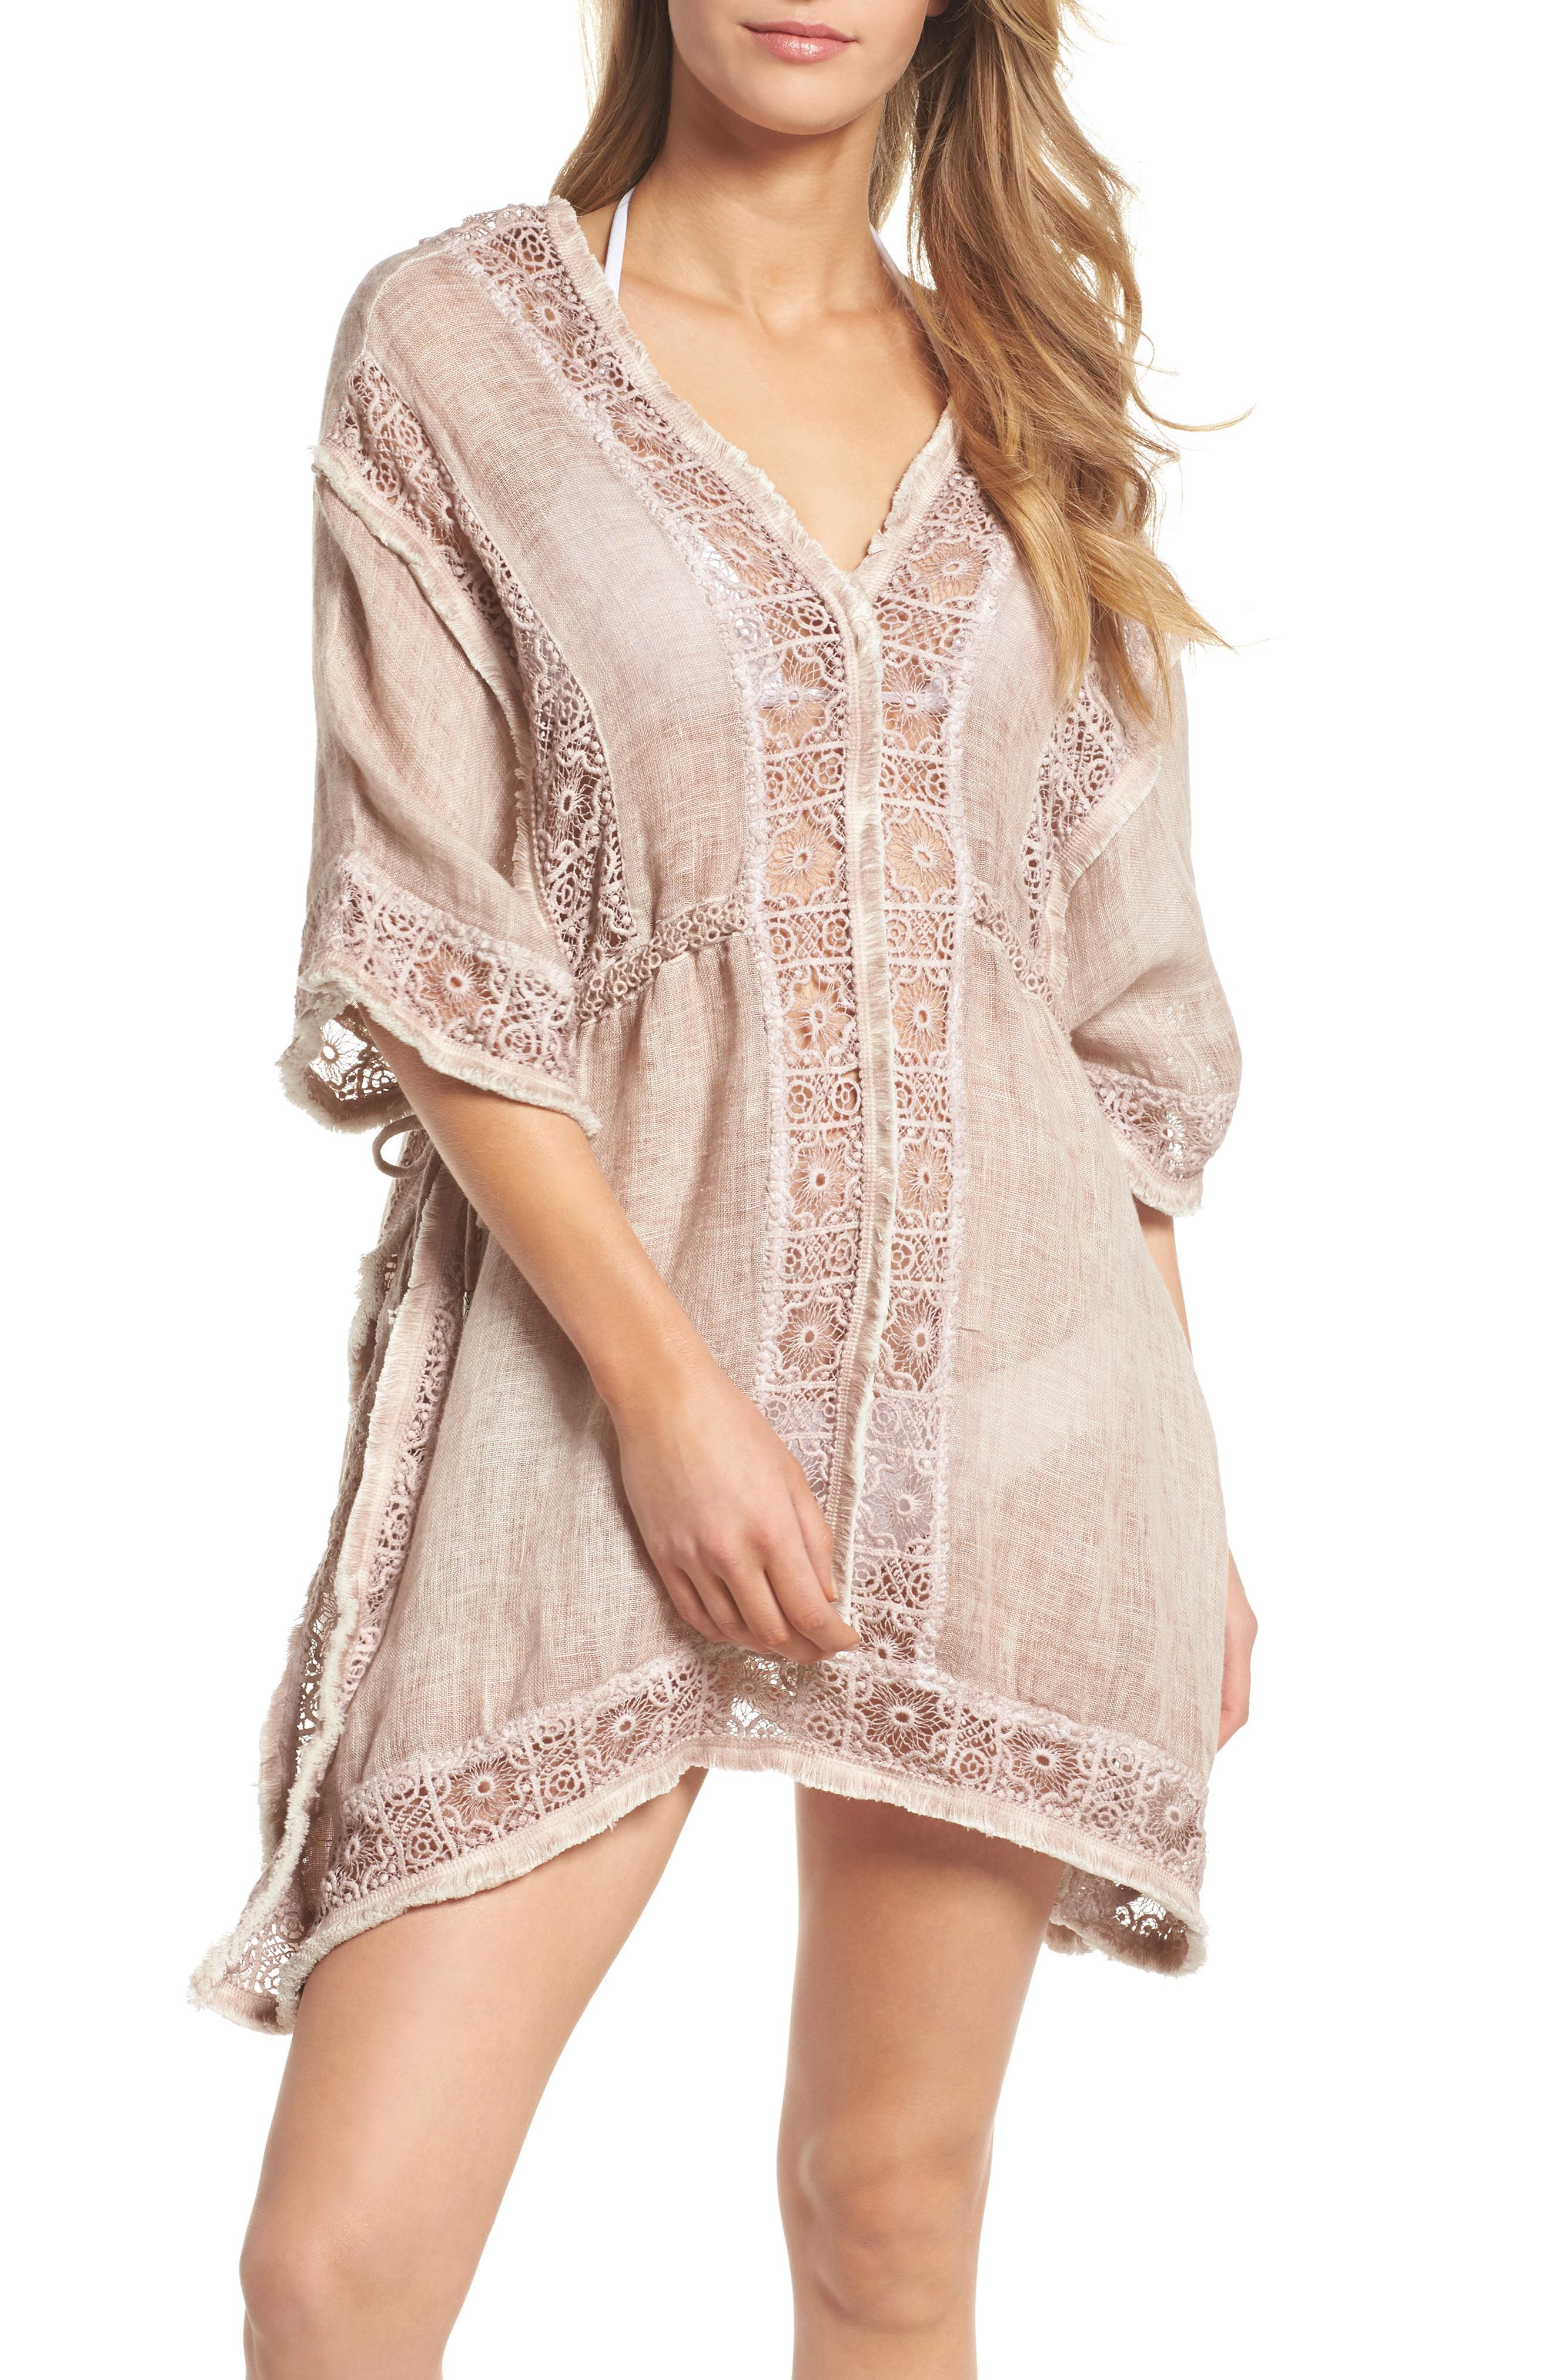 Zendaya Linen Cover-Up Tunic,                             Main thumbnail 1, color,                             656